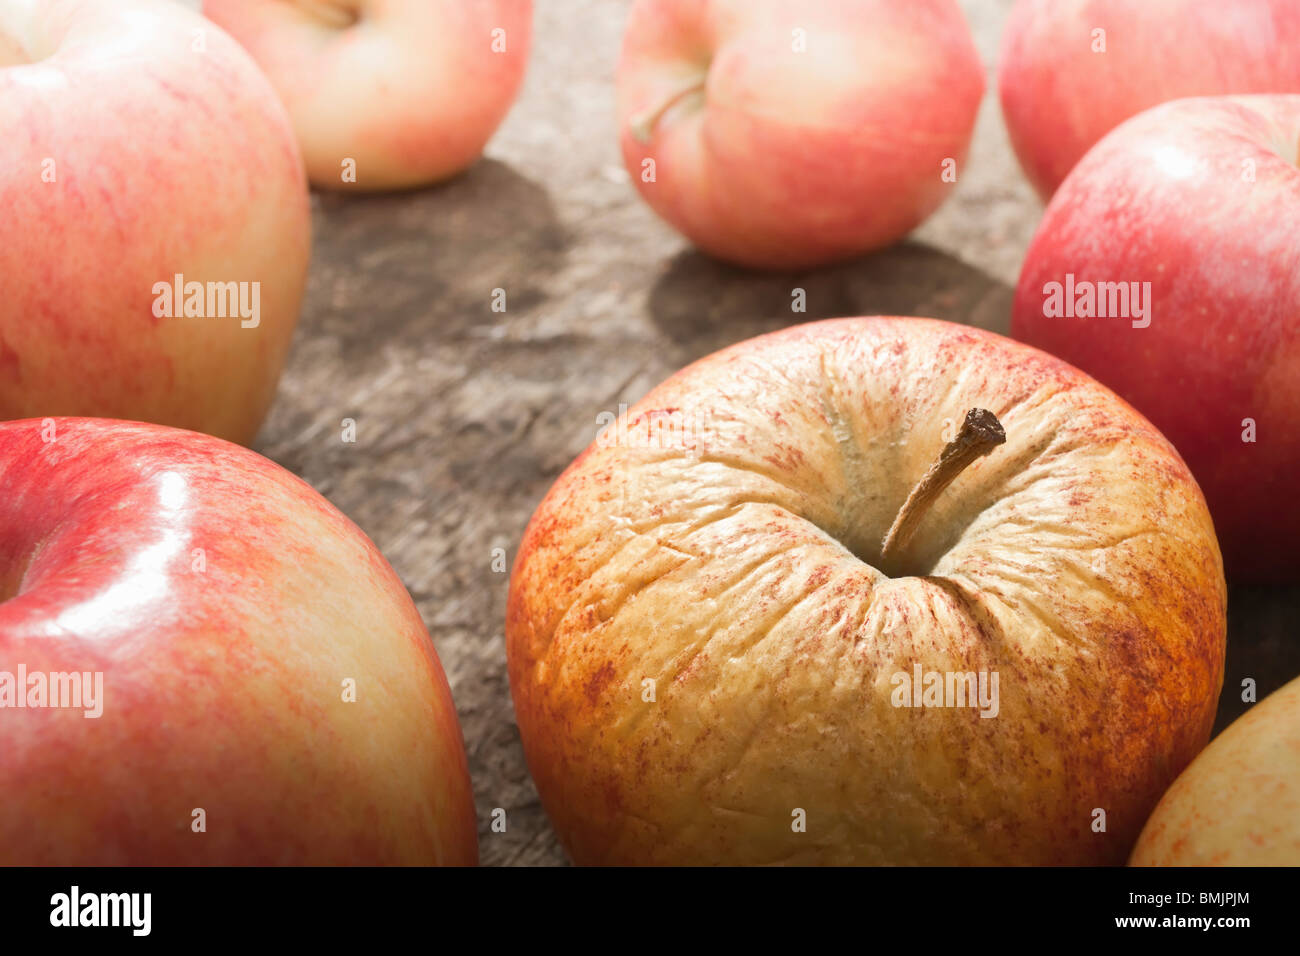 Apple with bad skin - Stock Image